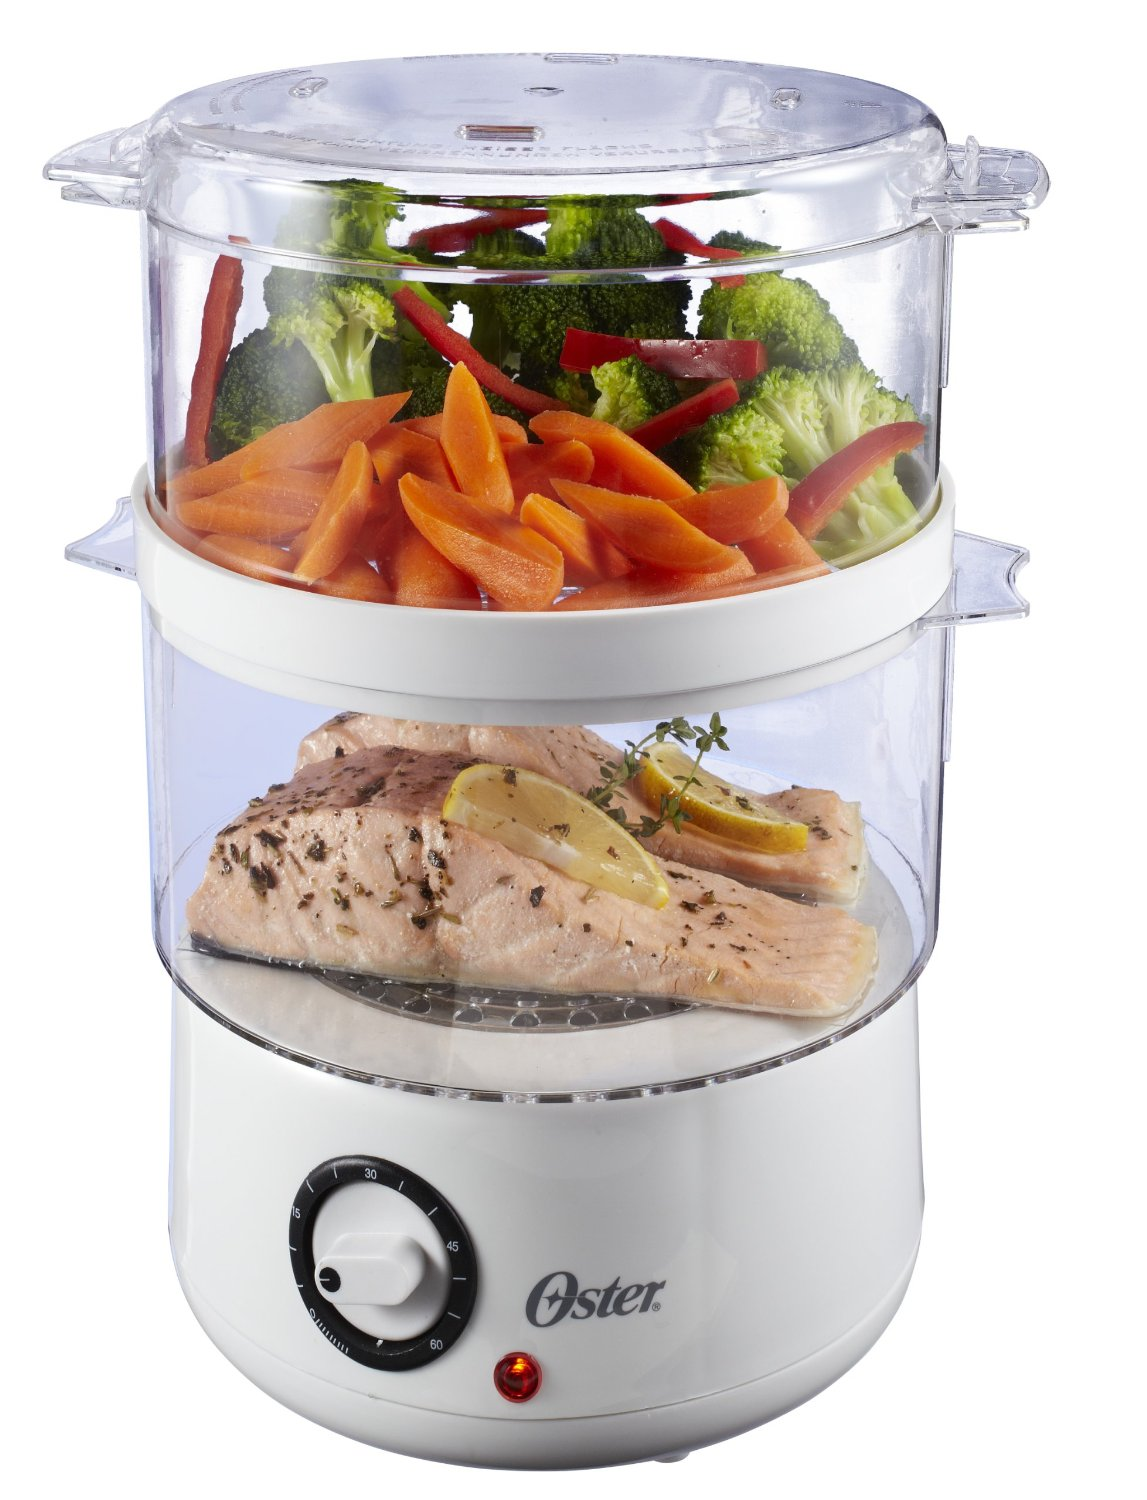 $13.35 Oster CKSTSTMD5-W 5-Quart Food Steamer, White